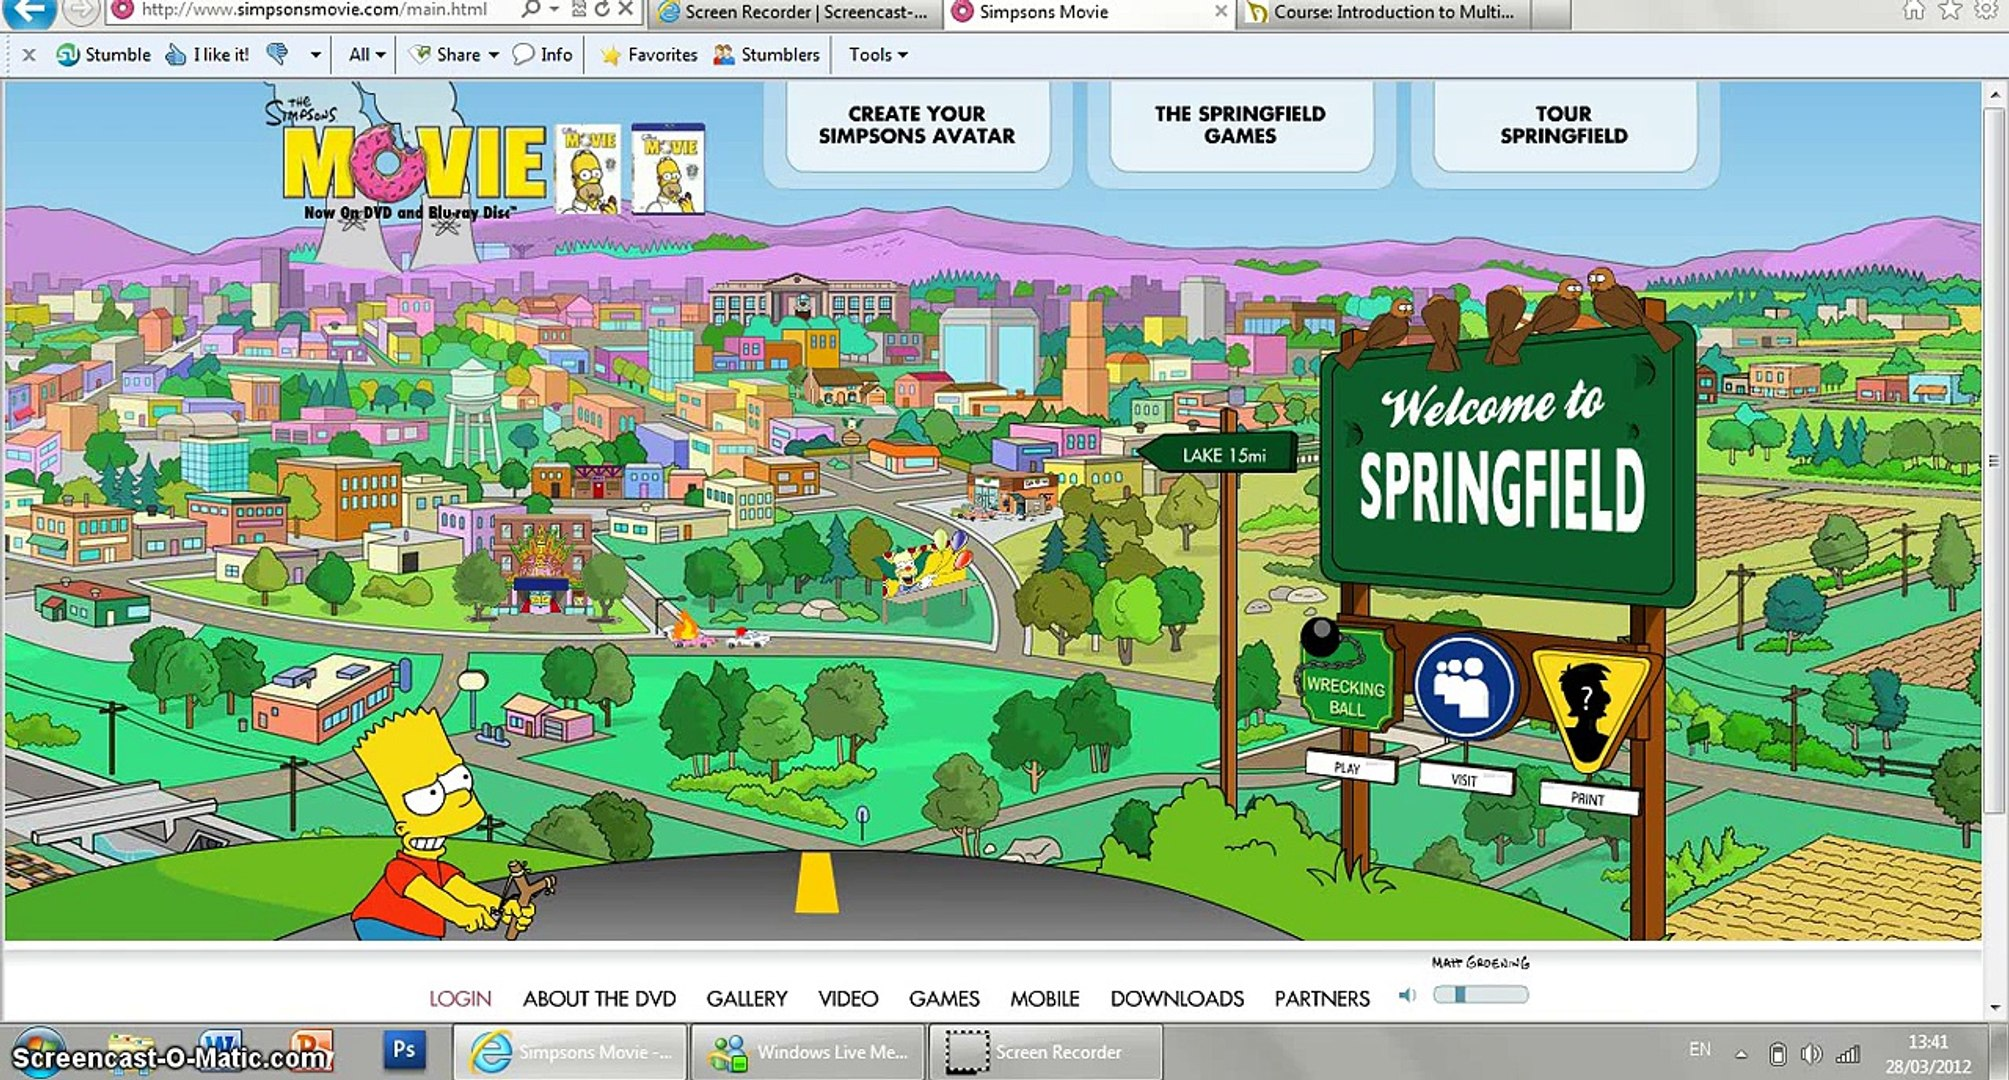 The Simpsons Movie Website Review Video Dailymotion